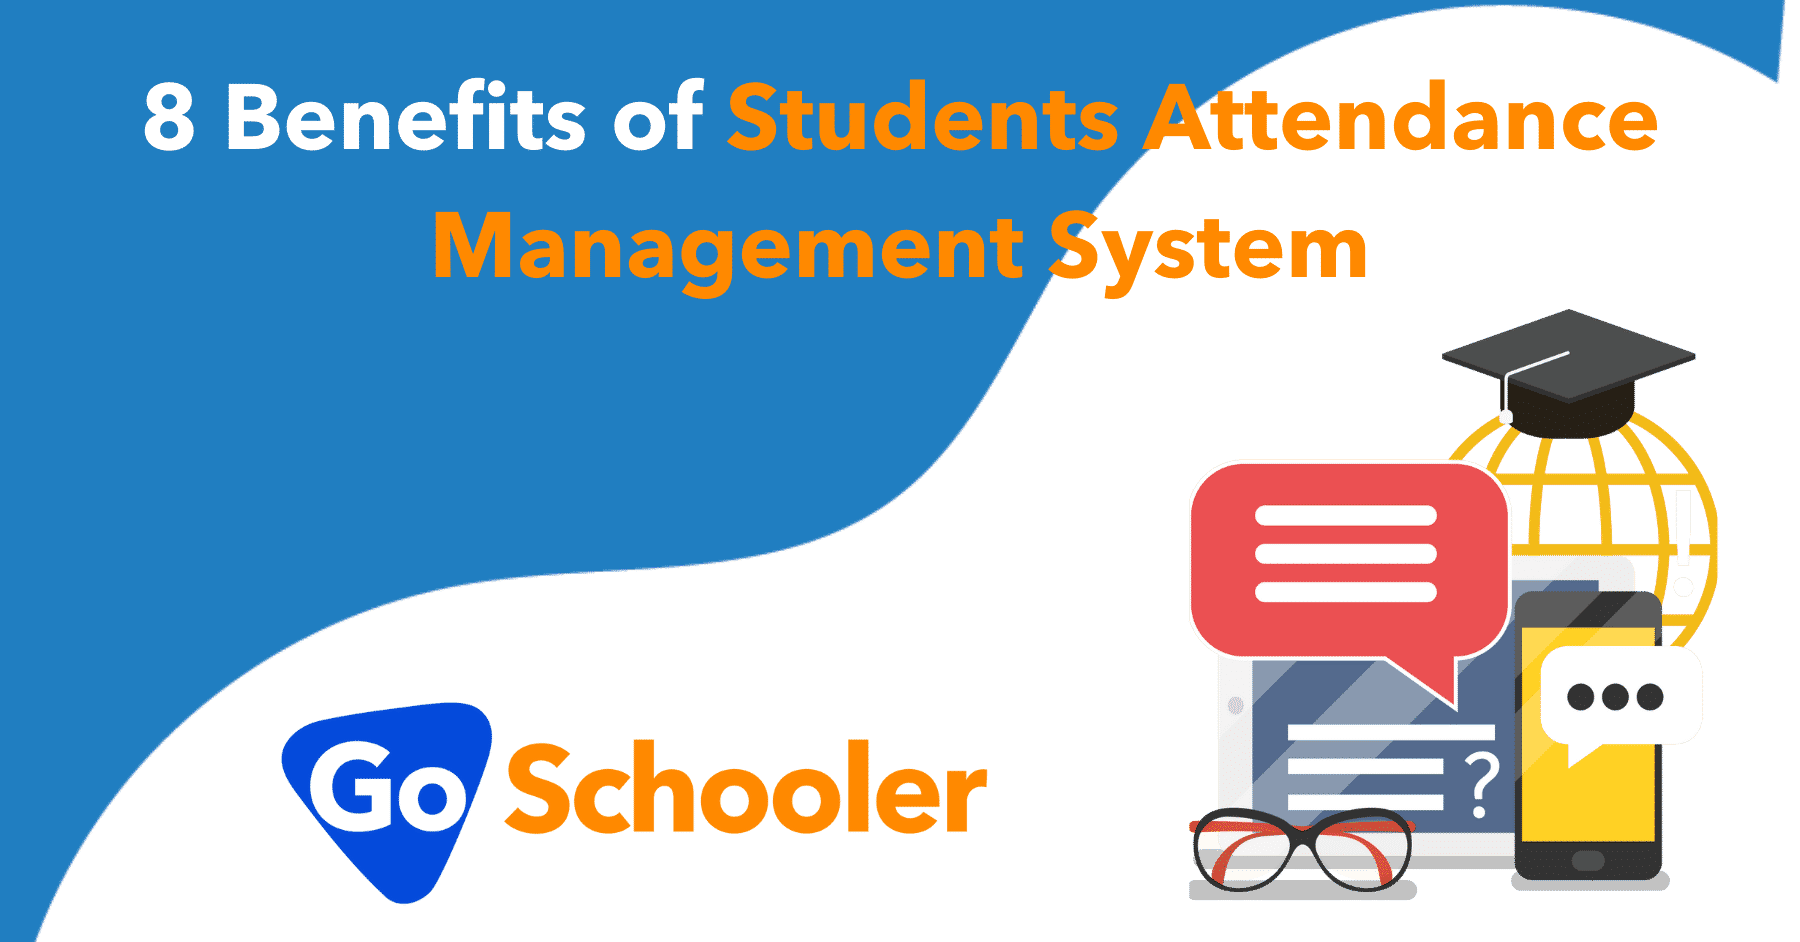 8 Benefits of Students Attendance Management System